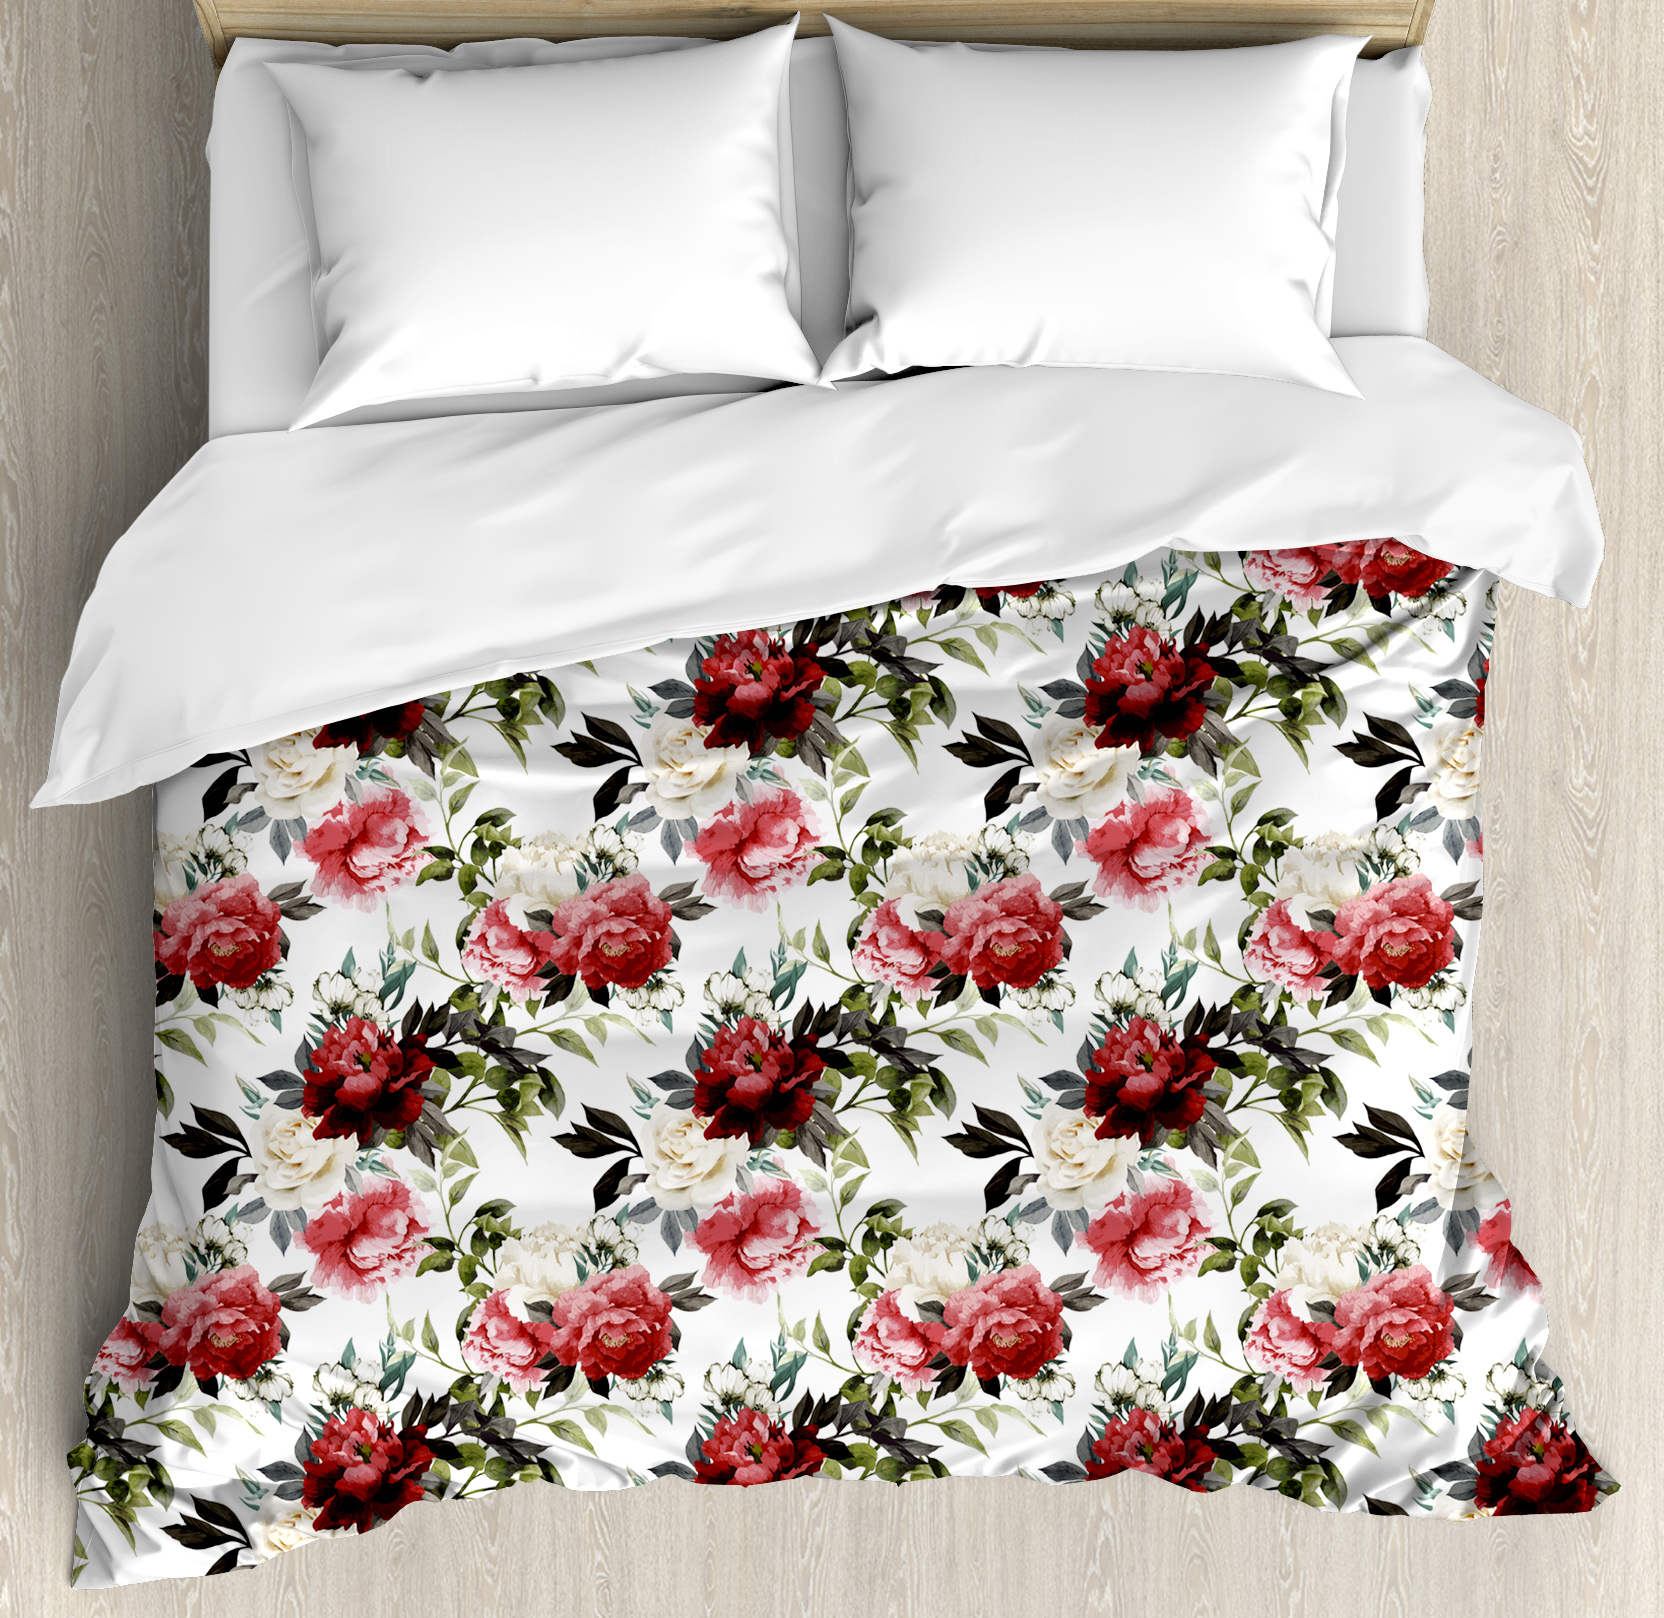 Shabby Chic Duvet Cover Set Country Style Floral Flower Roses